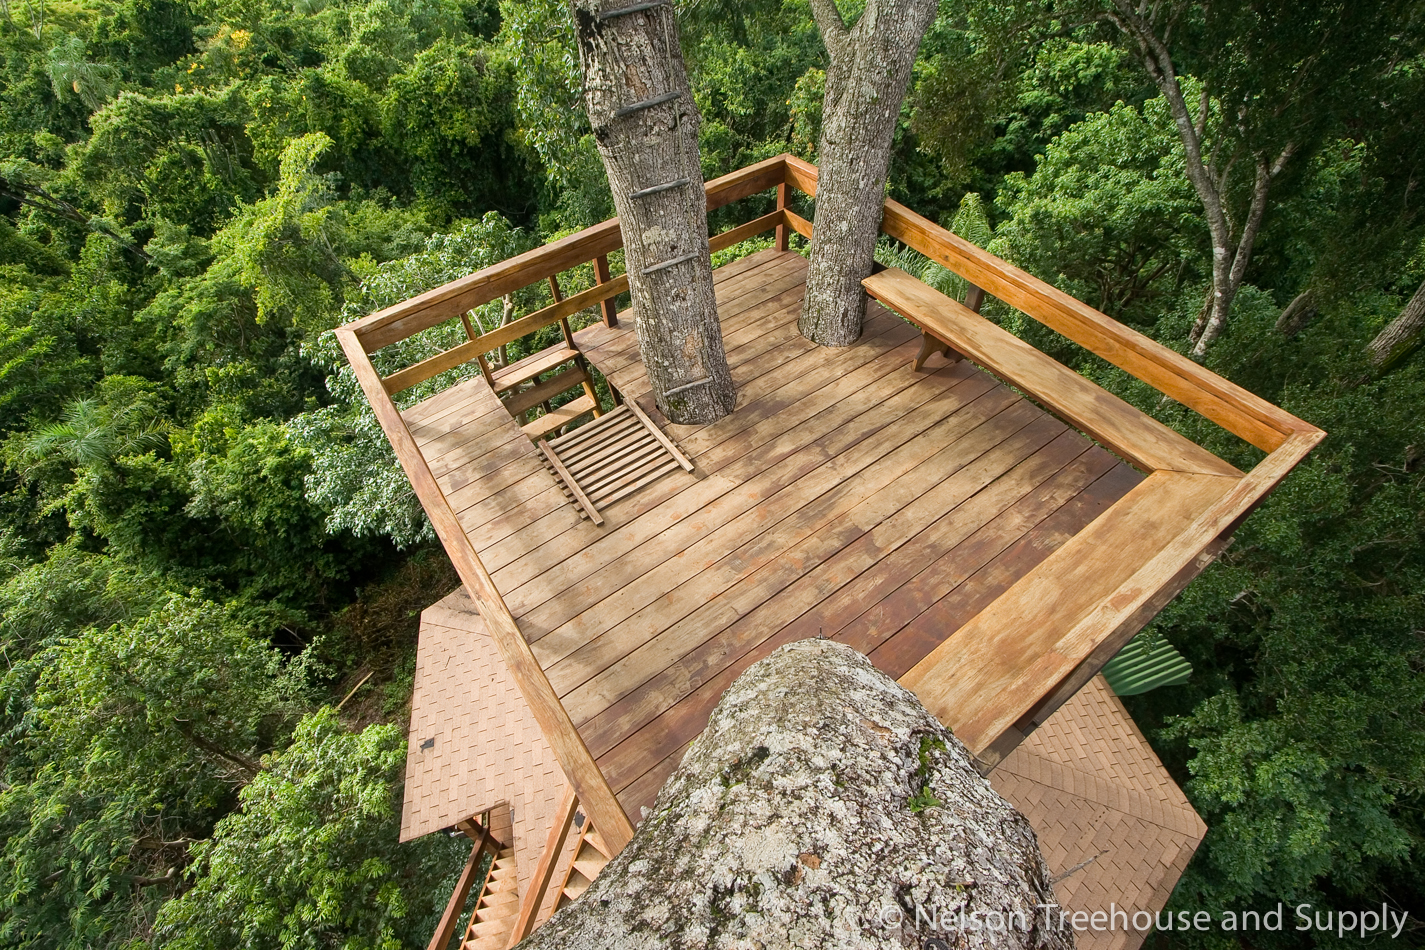 Sometimes simplICity is best when it comes to treehouses, like this treehouse deck platform in Brazil.